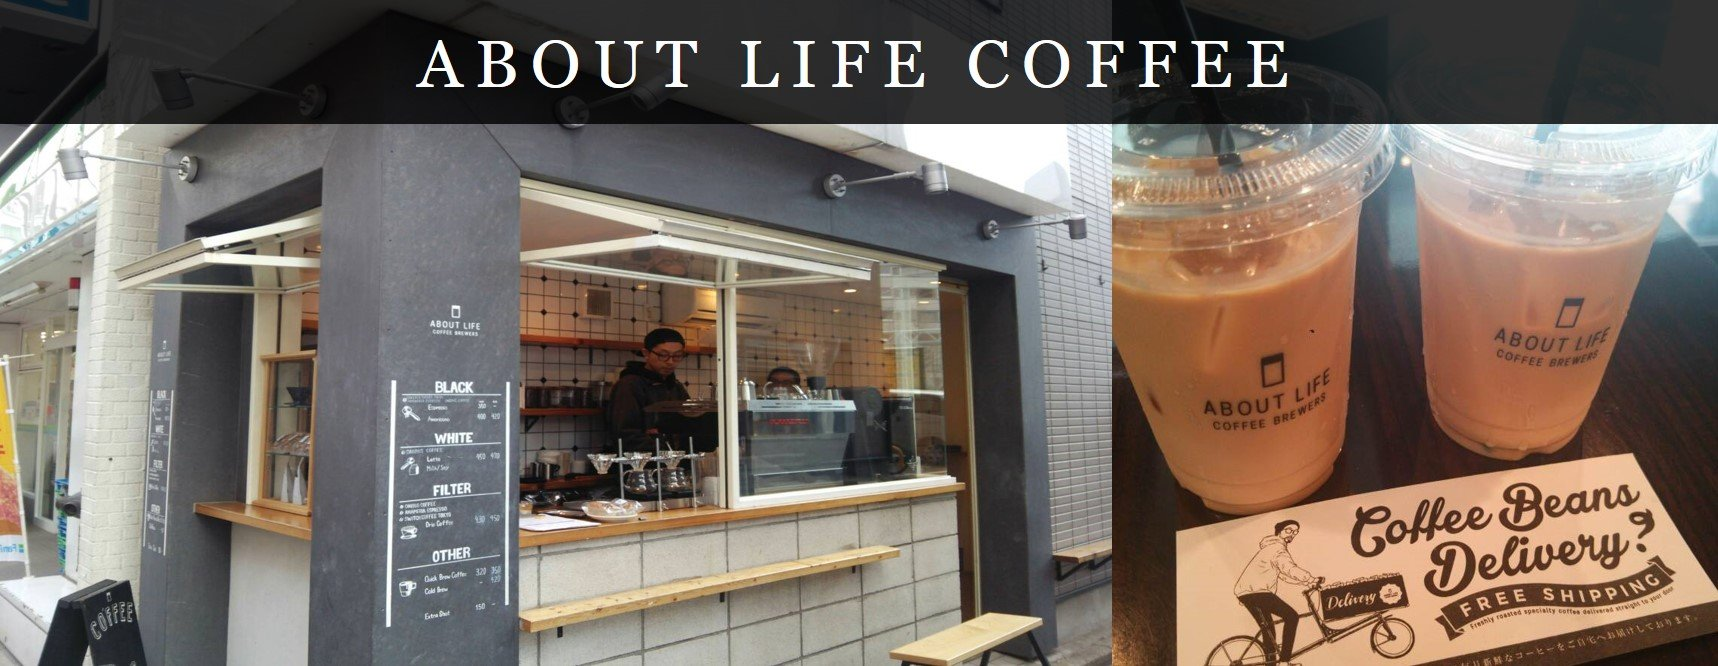 ABOUT LIFE COFFEE BREWERS TOP画像